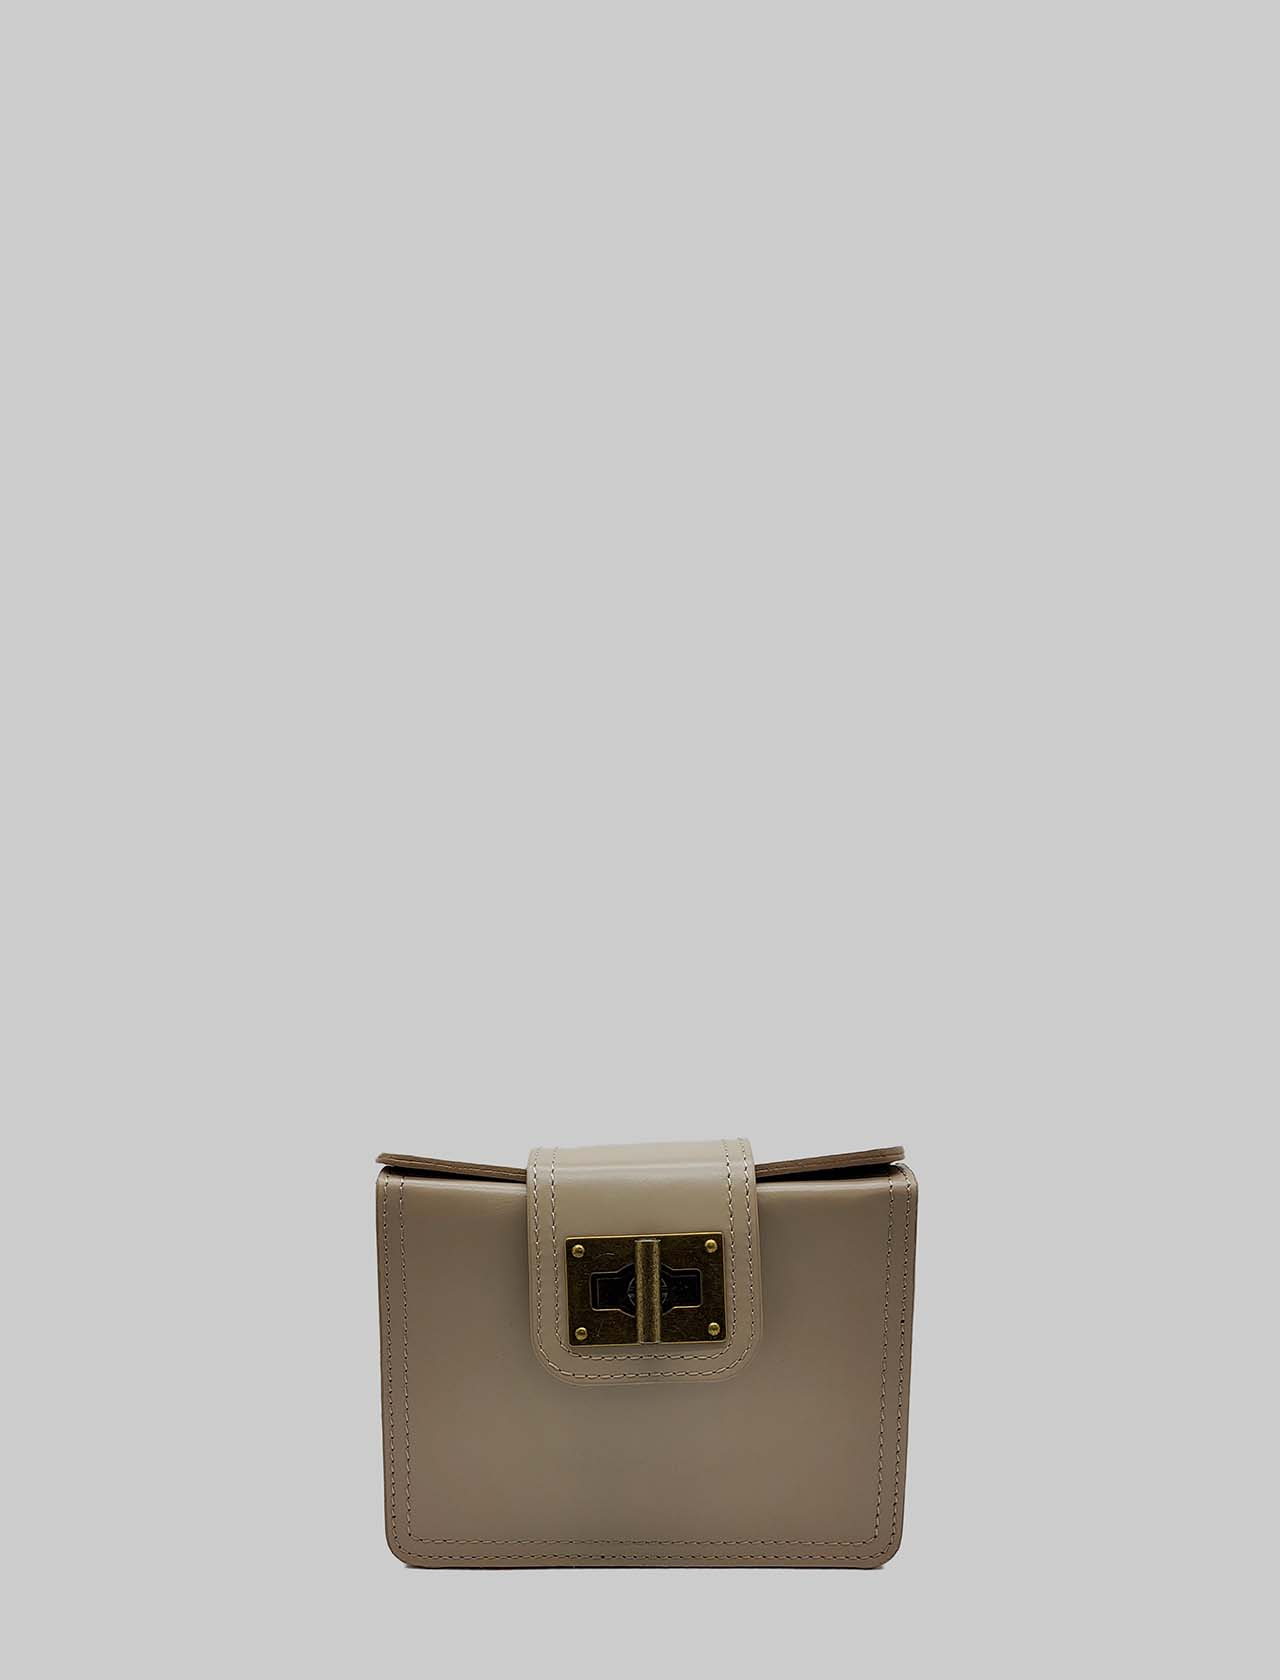 Women's Bags Clutch in Small Nude Leather with Adjustable Leather Rigid Shoulder Strap Spatarella | Bags and backpacks | PE0204300